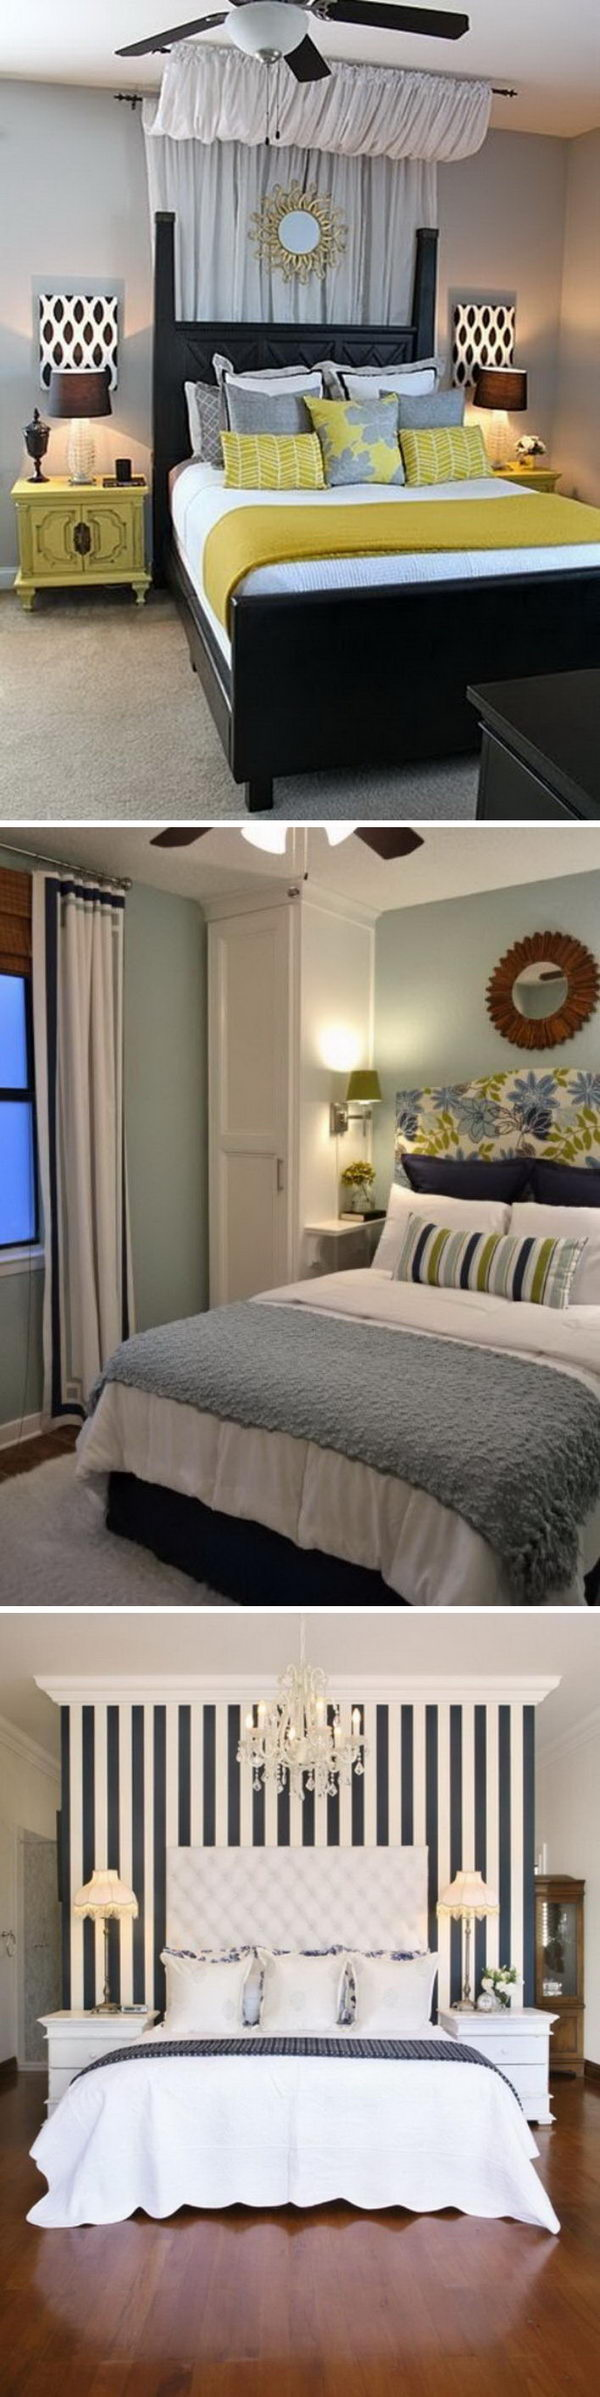 Creative Ways To Make Your Small Bedroom Look Bigger.